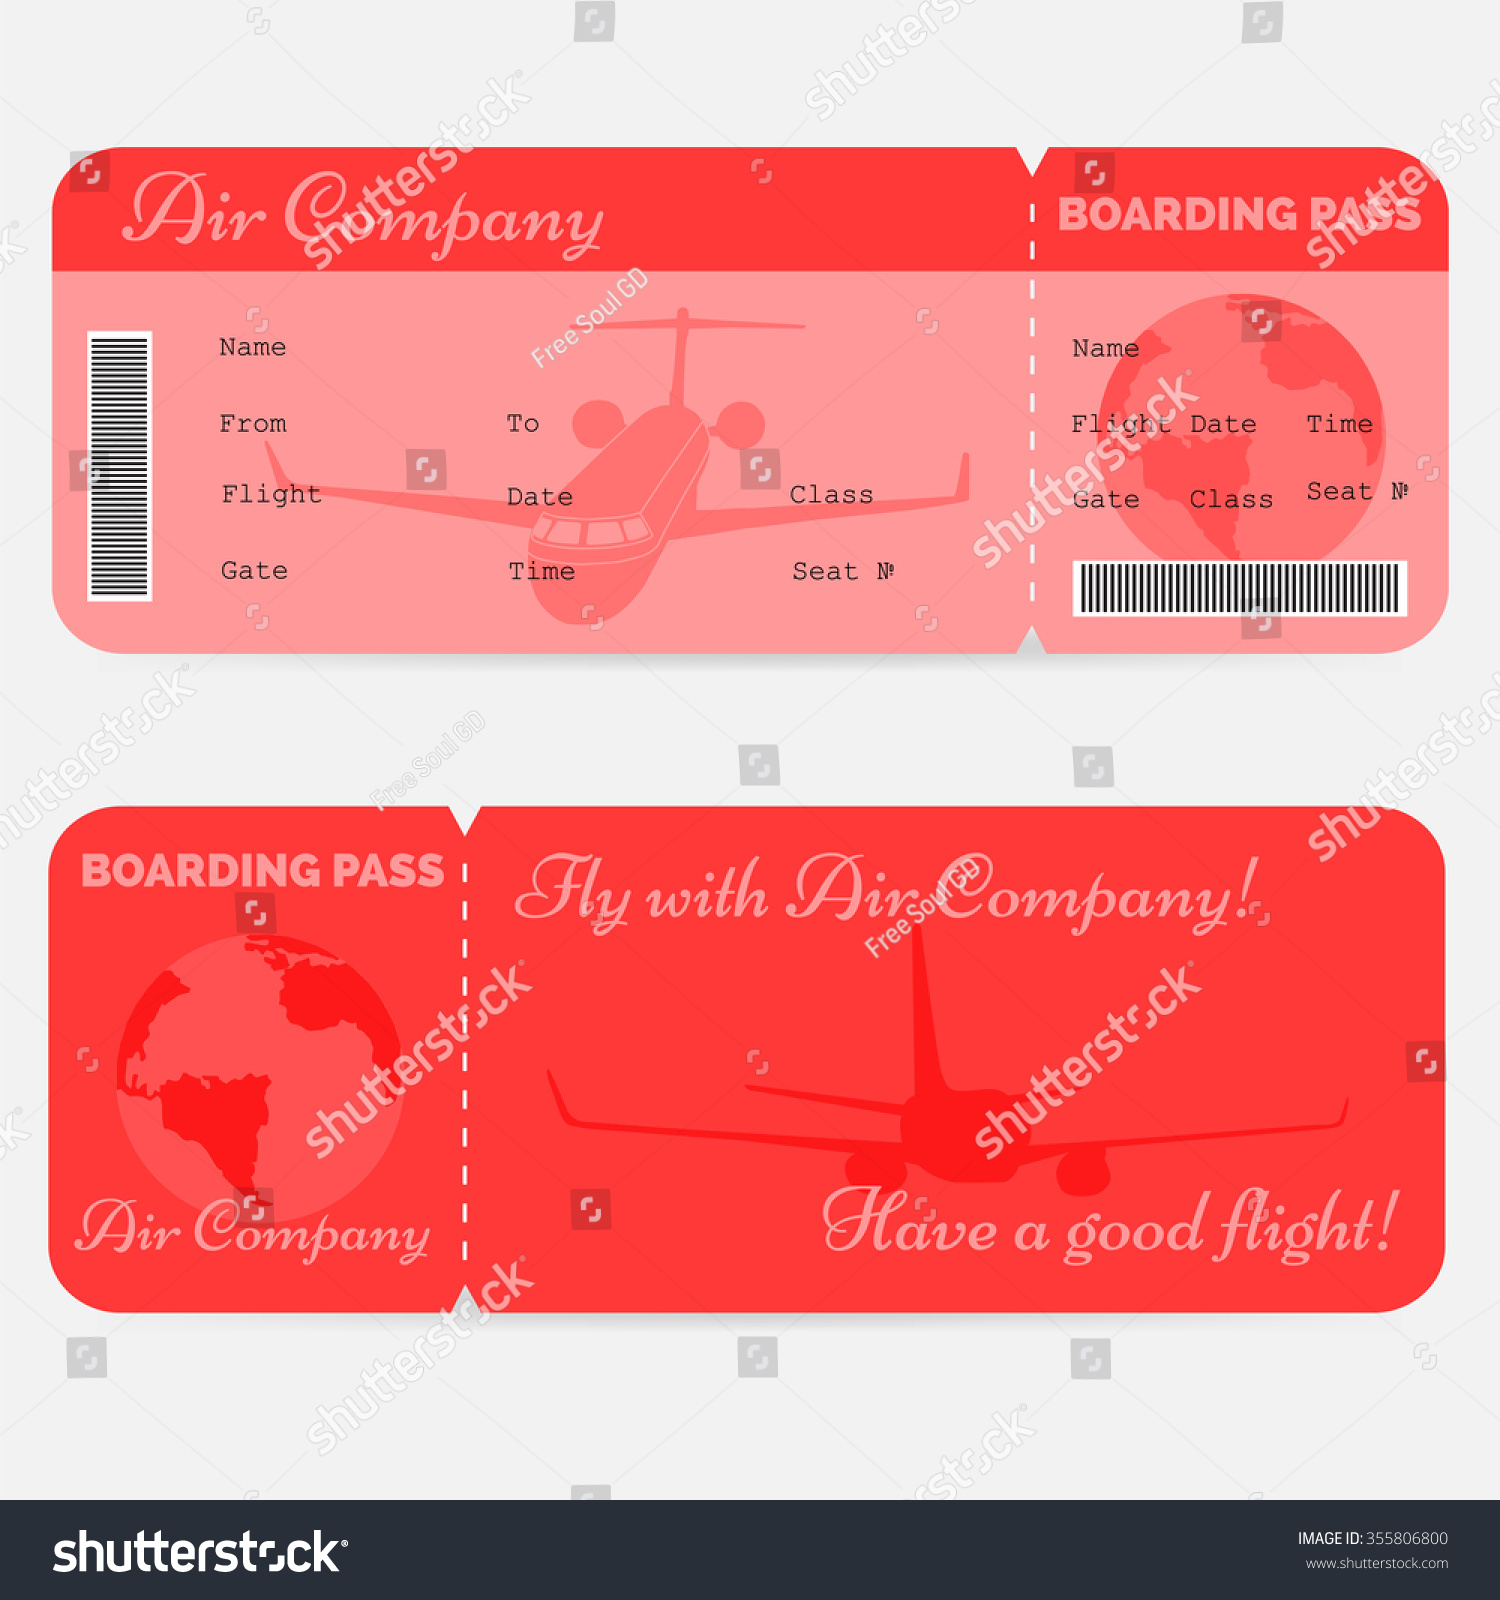 Variant Airline Boarding Pass Red Ticket Stock Vector (Royalty Free ...